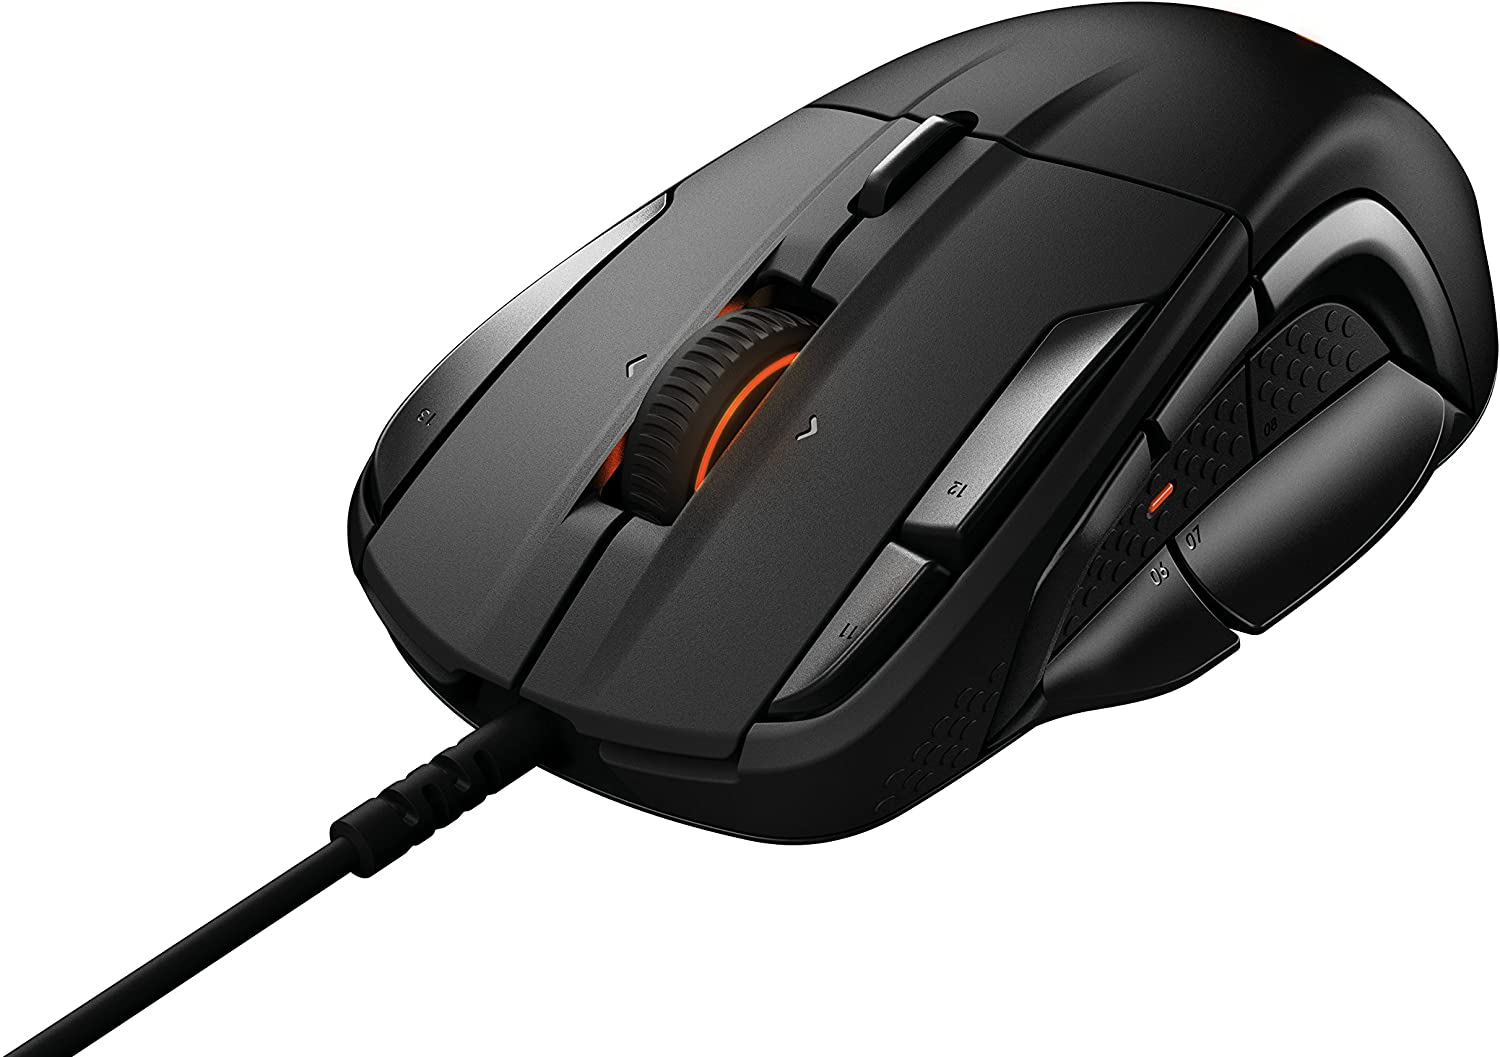 SteelSeries-Rival-500